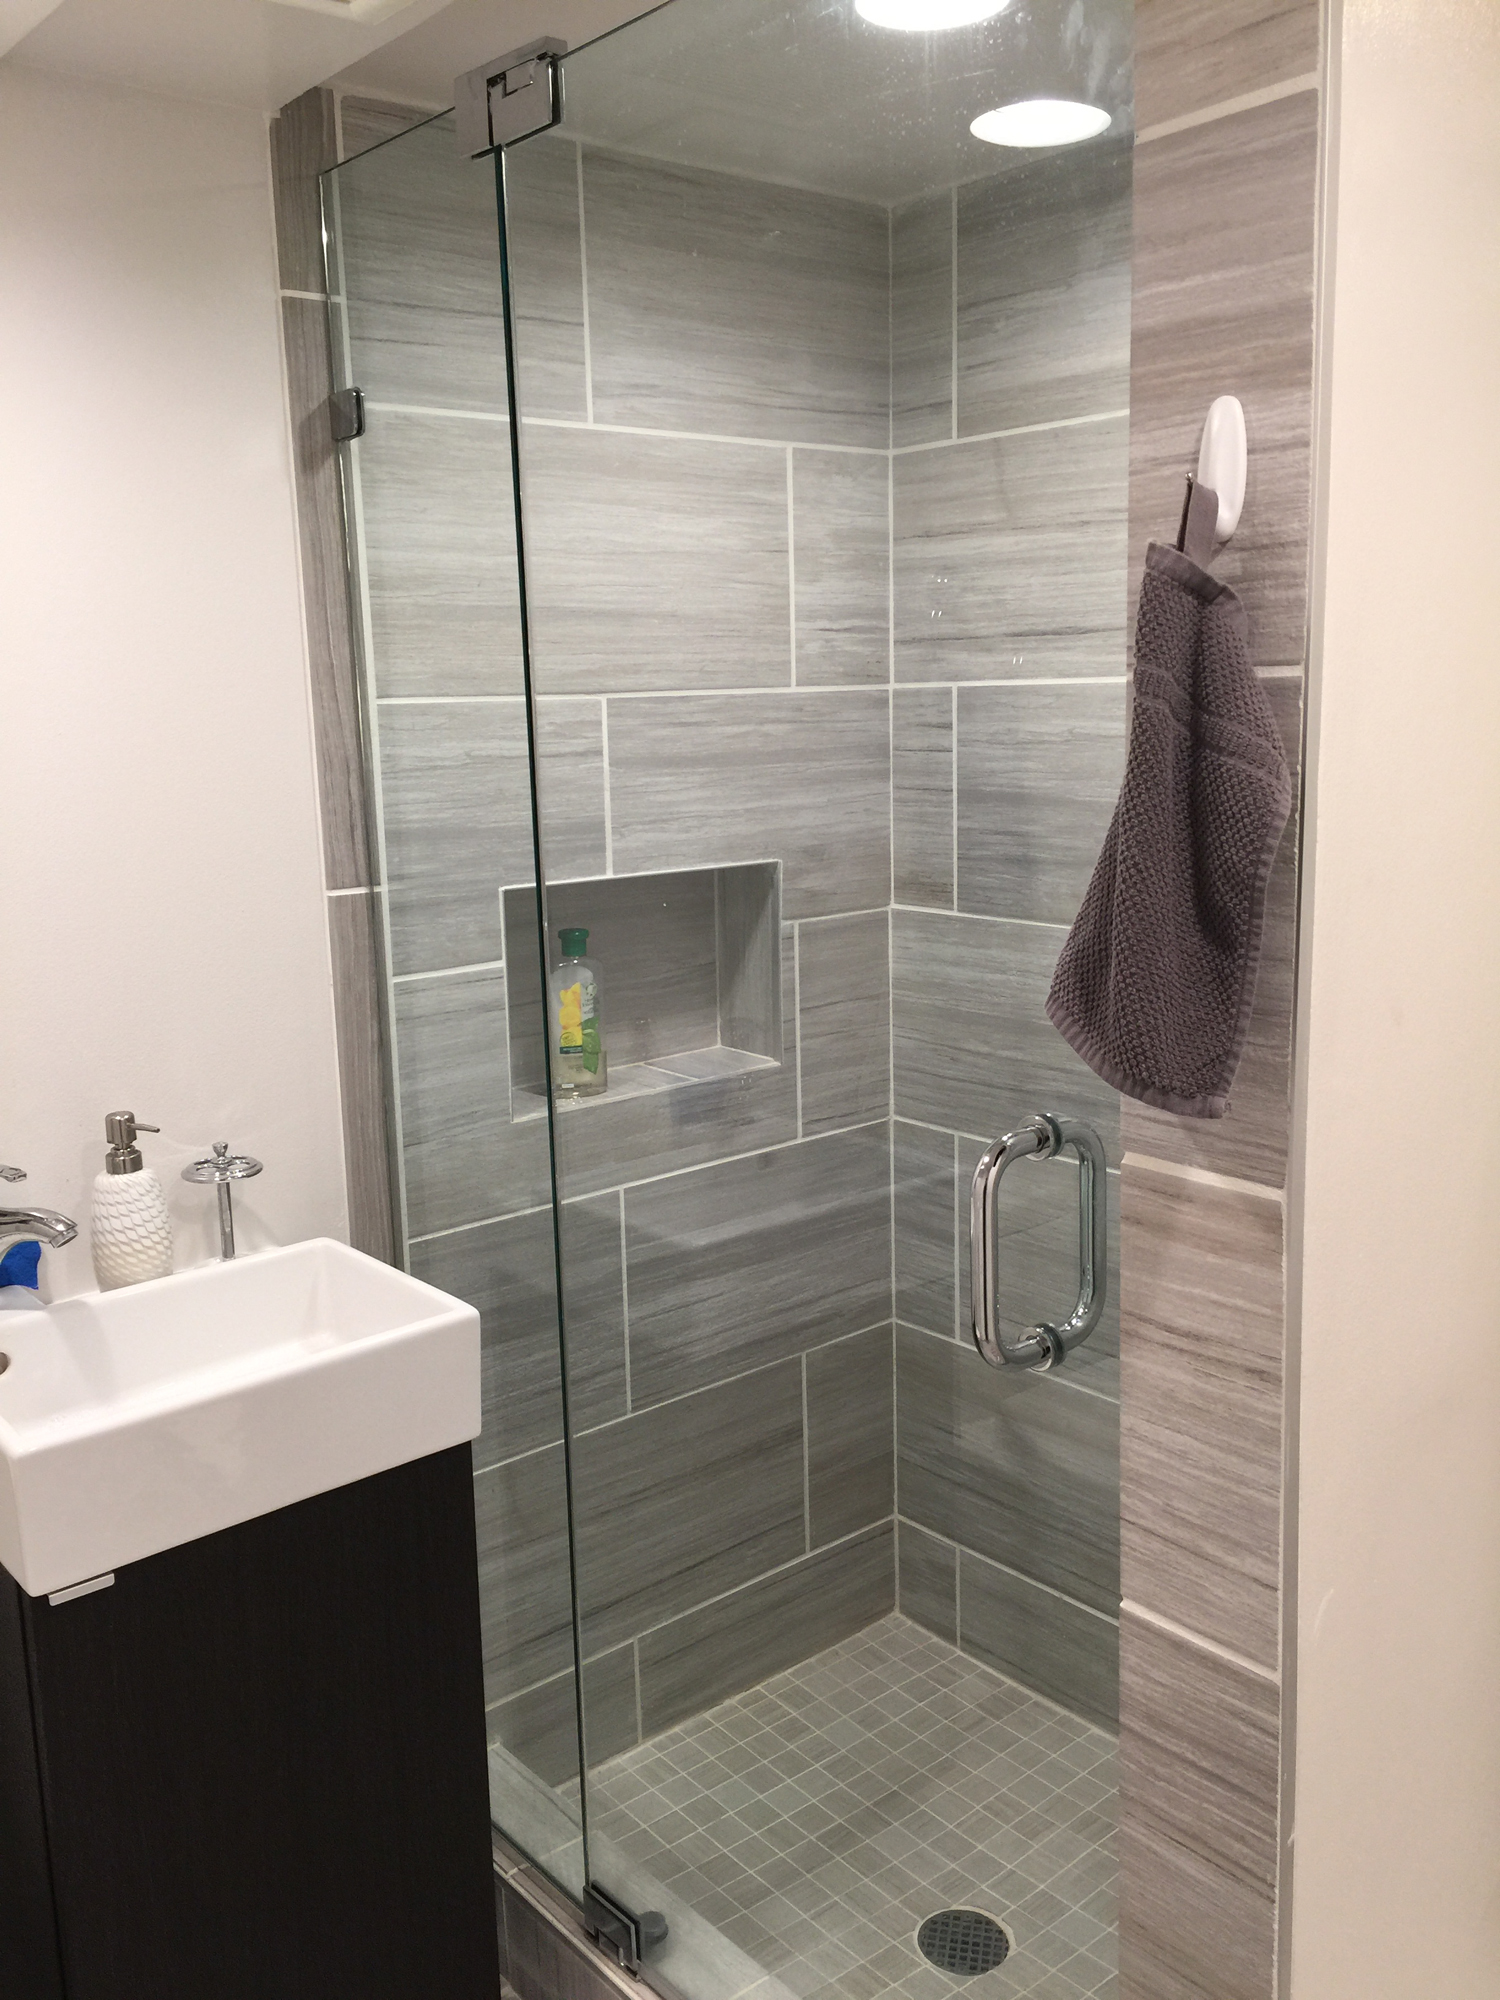 Small bathroom frameless shower door installation wayne nj for Bathroom shower stall replacement